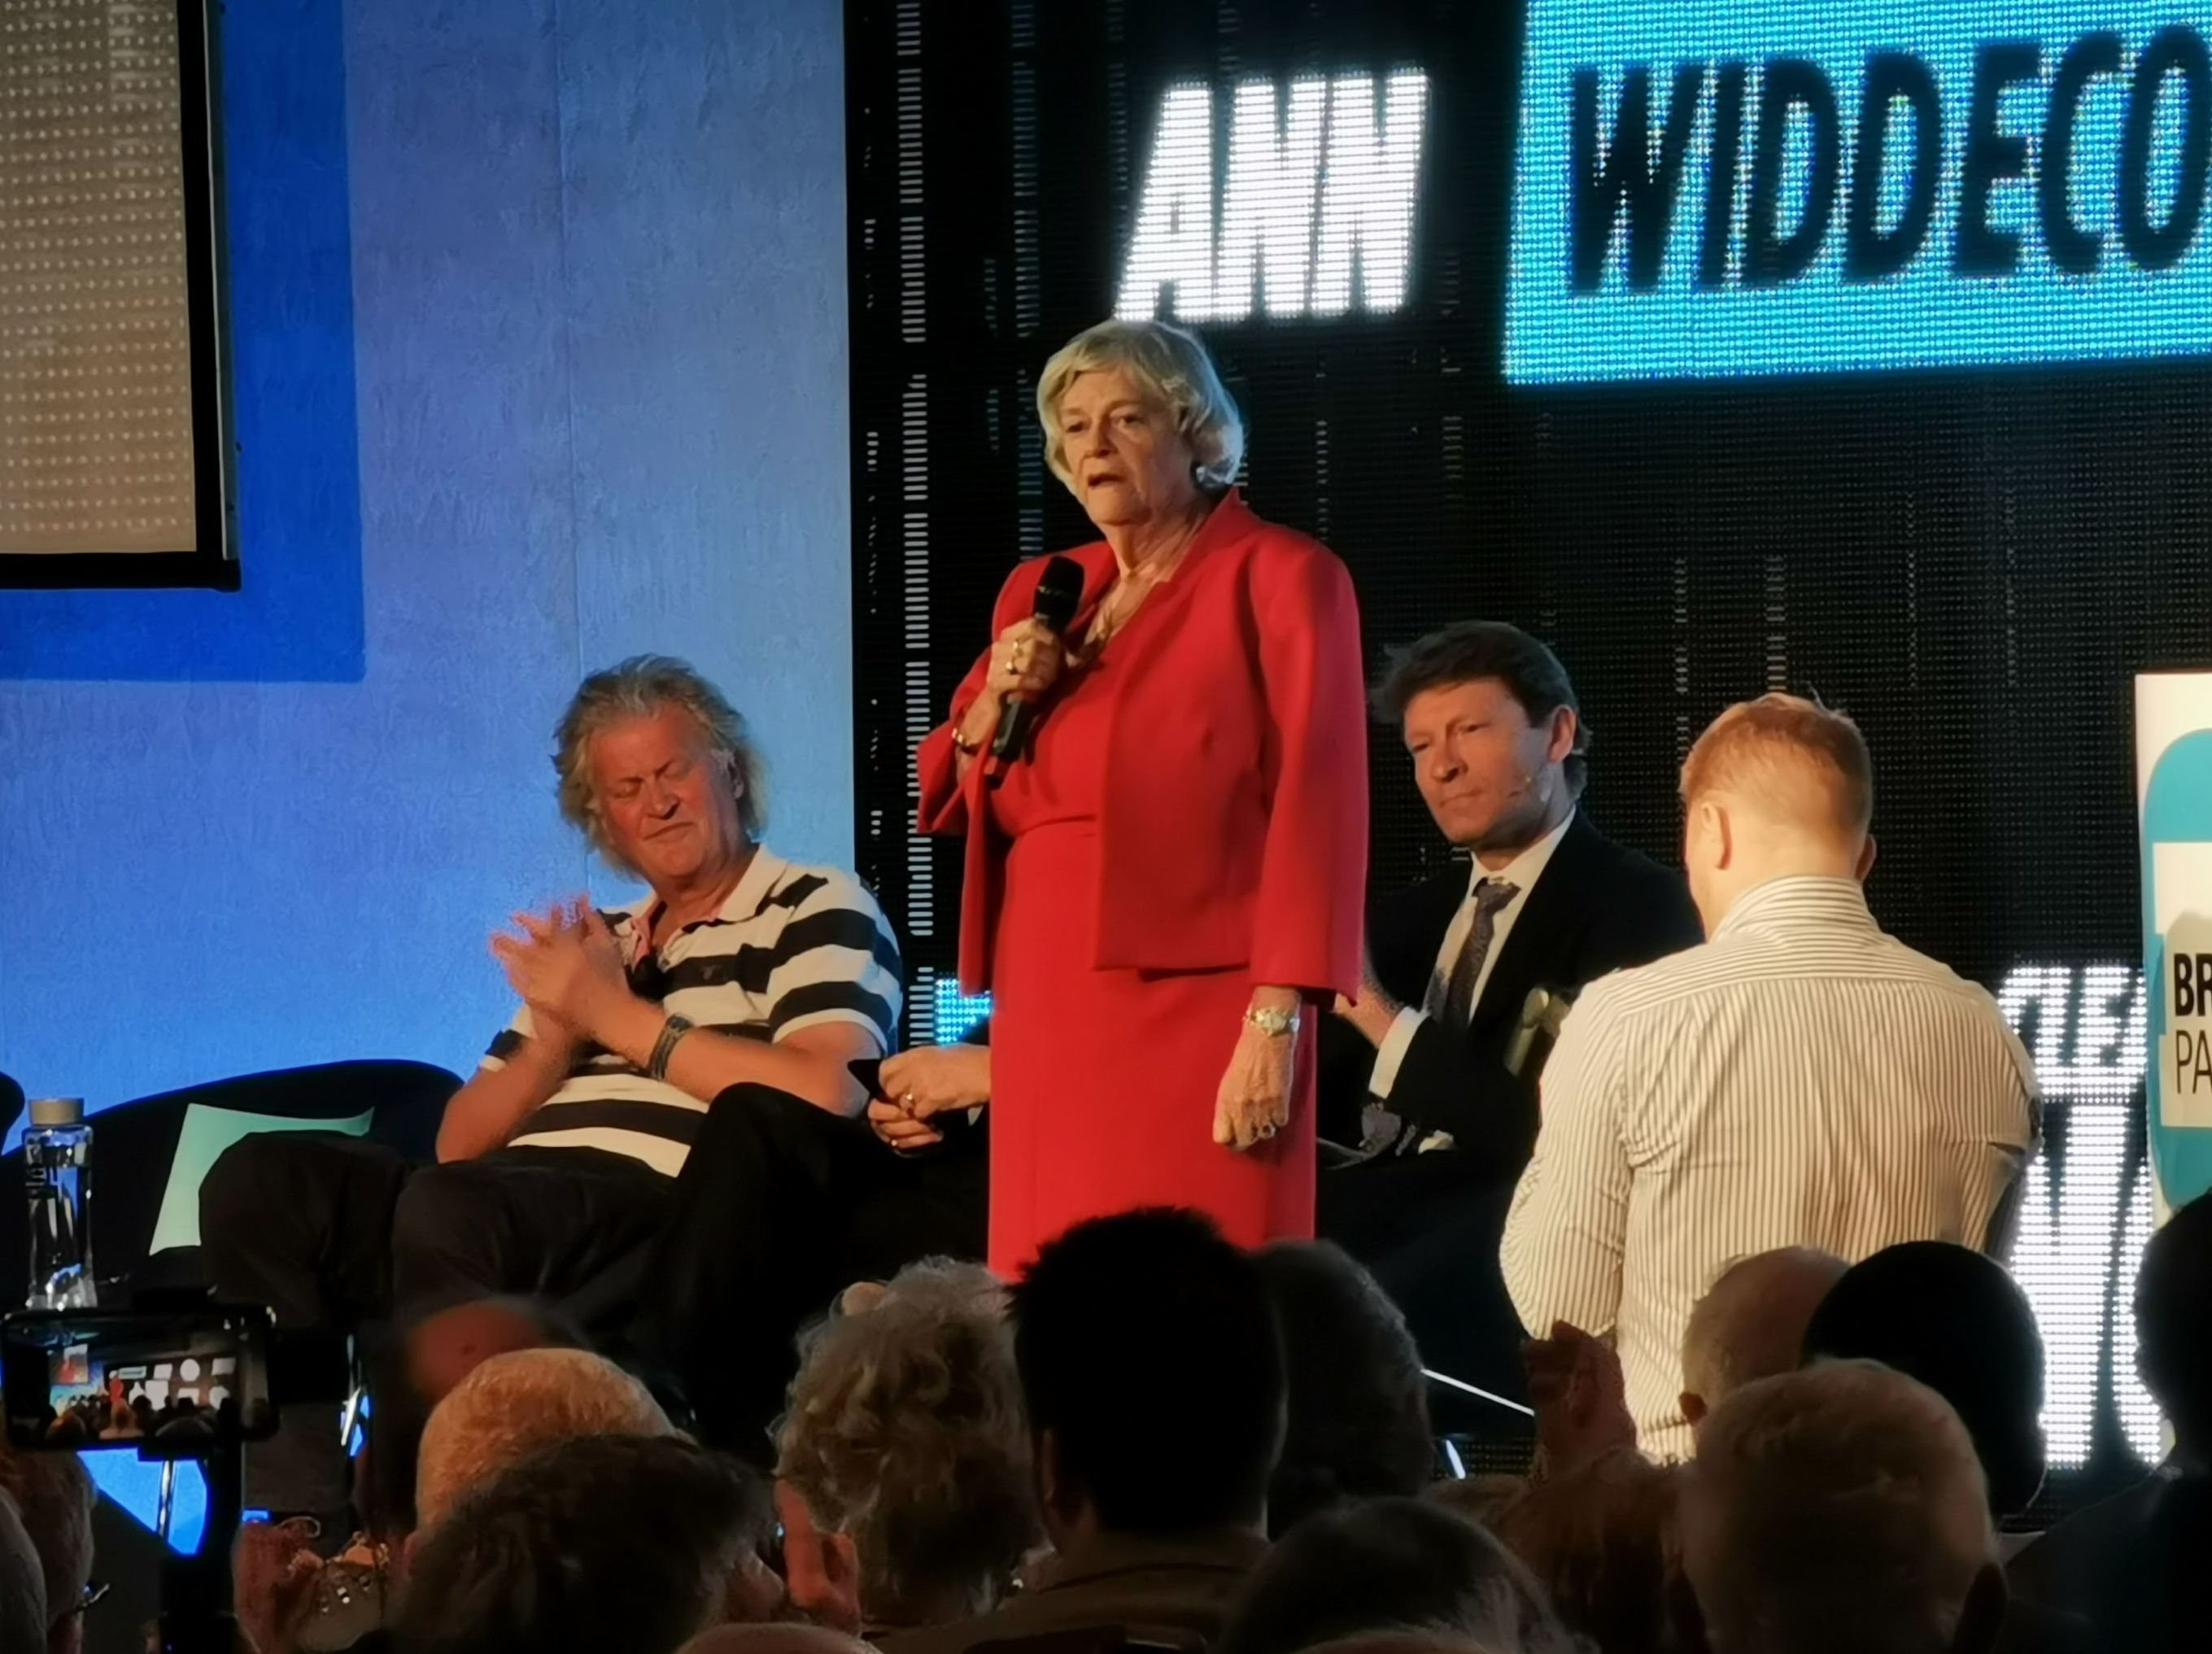 Ann Widdecombe at Brexit party rally